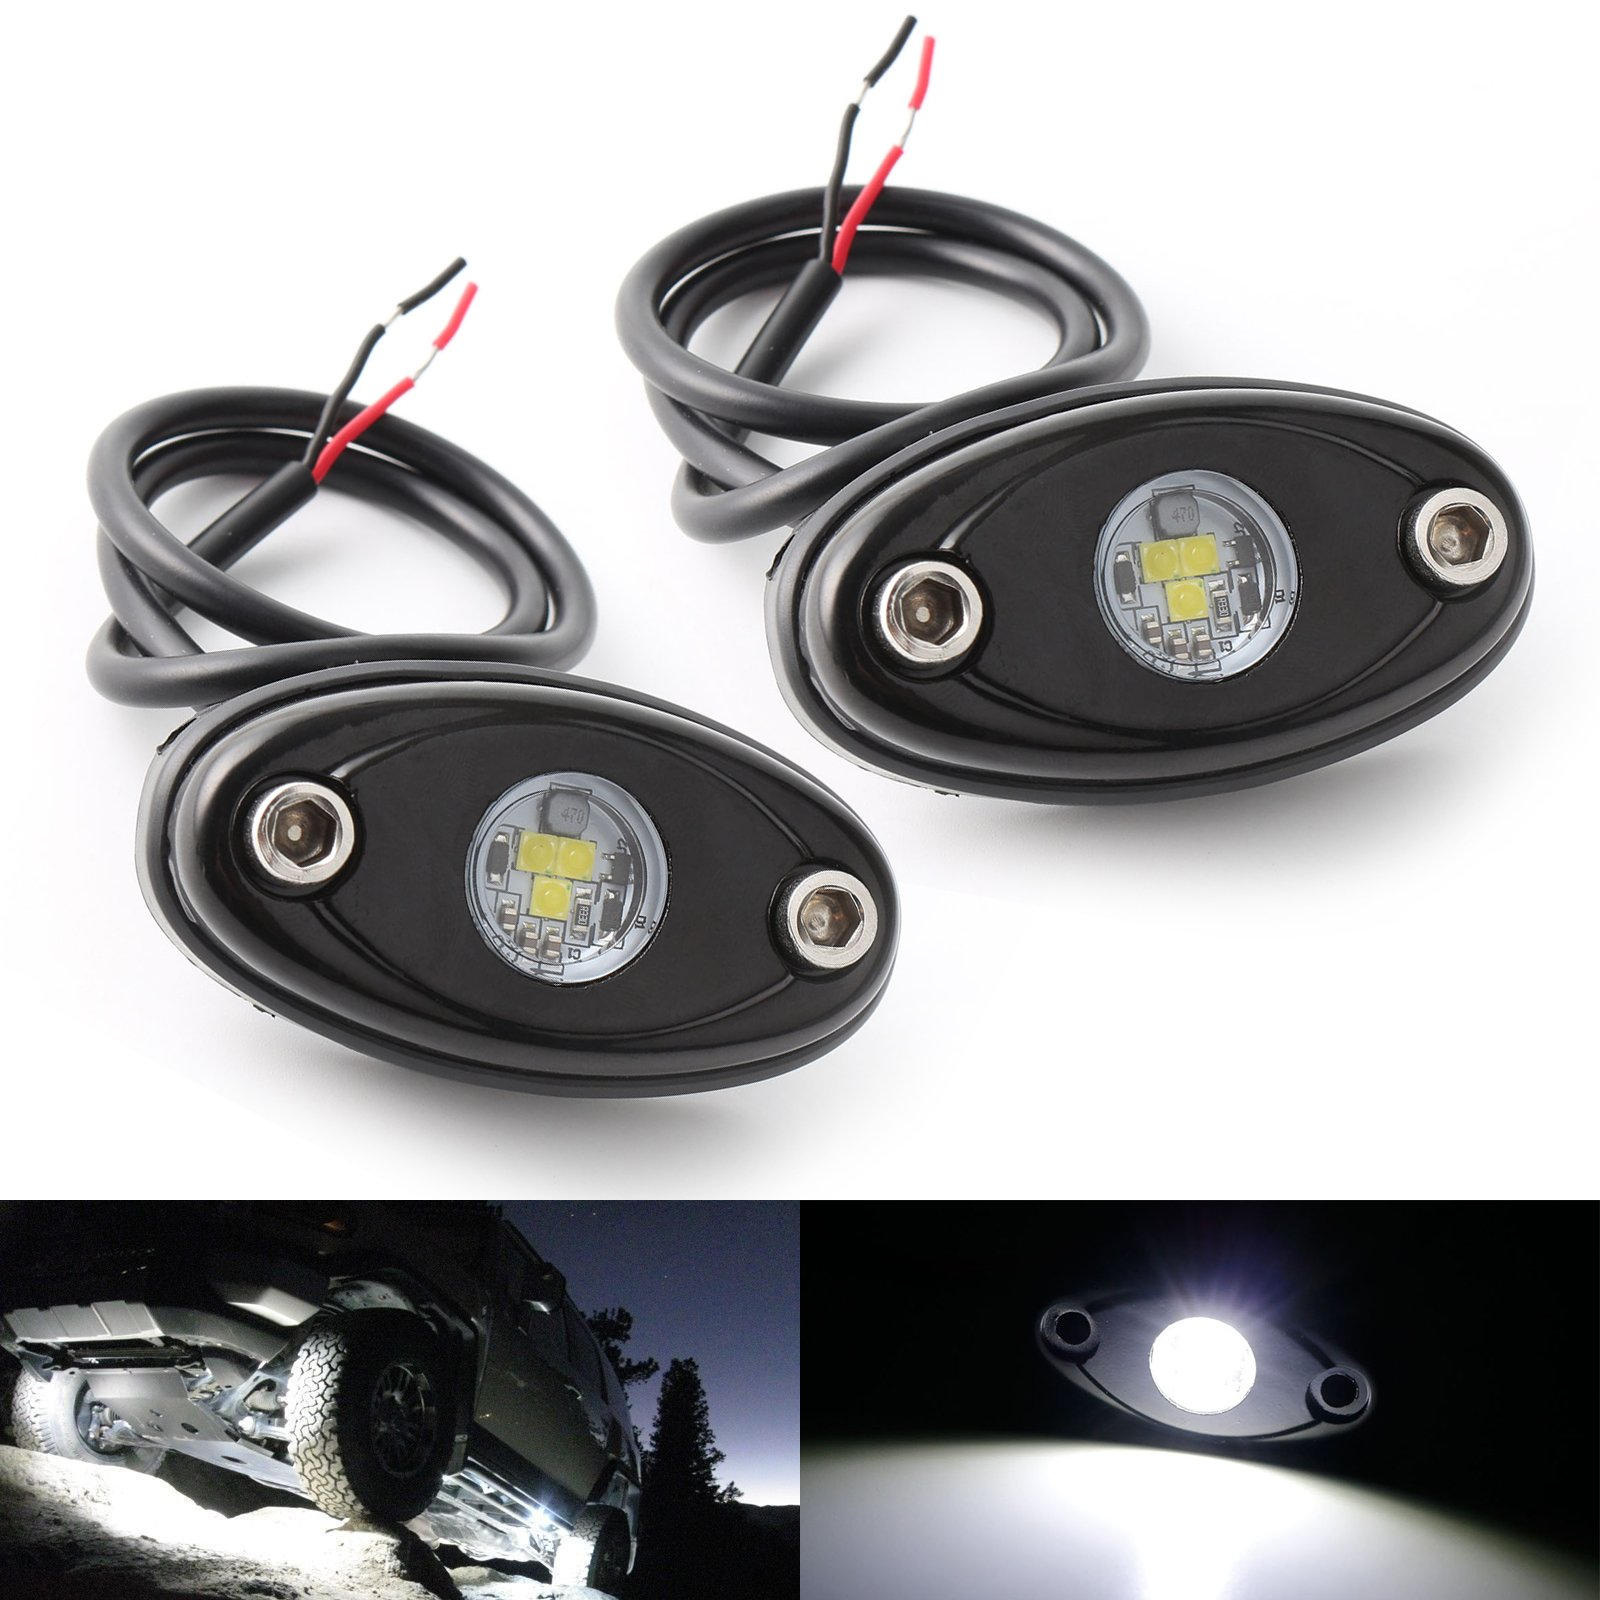 LEDMIRCY LED Rock Lights White 2PCS Kit for JEEP Off Road Truck Auto Car Boat ATV SUV RZR Waterproof High Power Neon Trail Rig Lights Shockproof(Pack of 2,White)